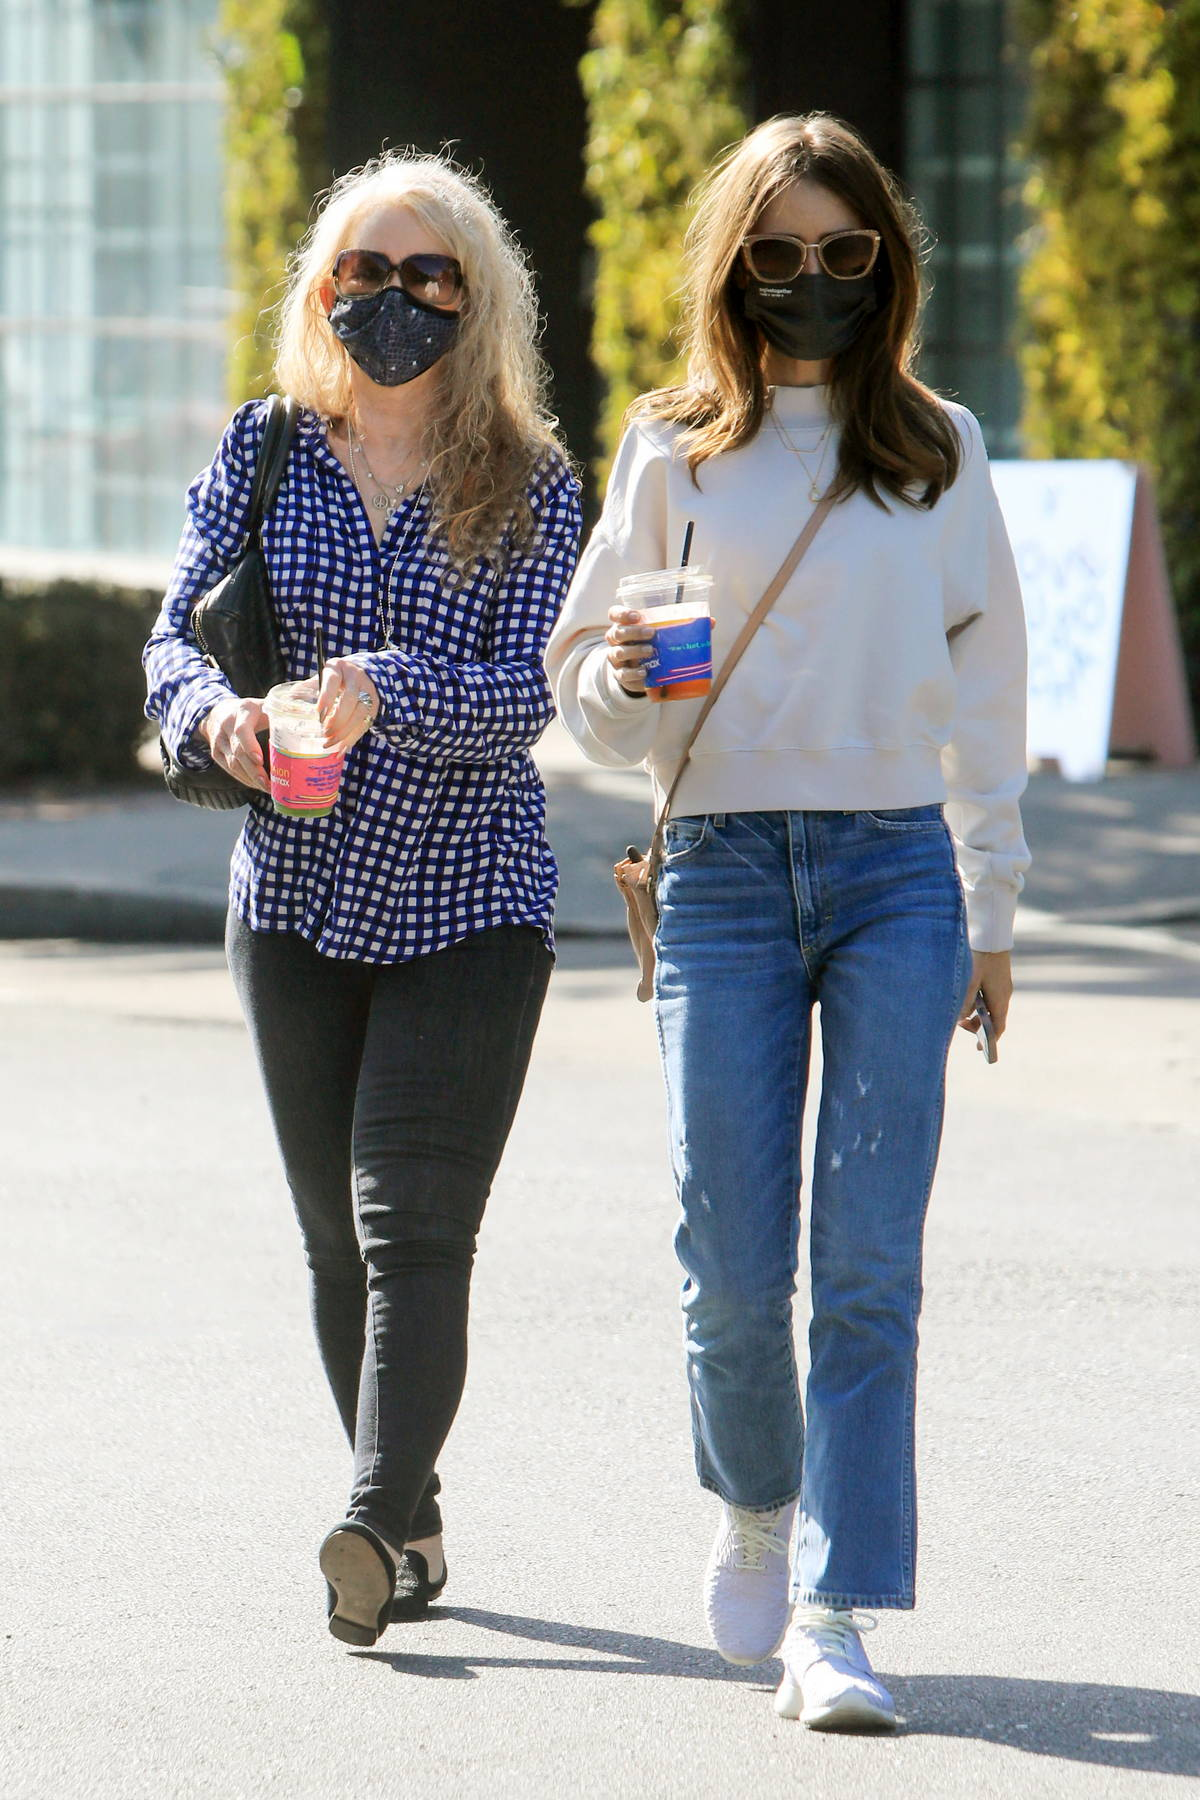 Lily Collins takes her Mom out for lunch to celebrate her birthday in West Hollywood, California